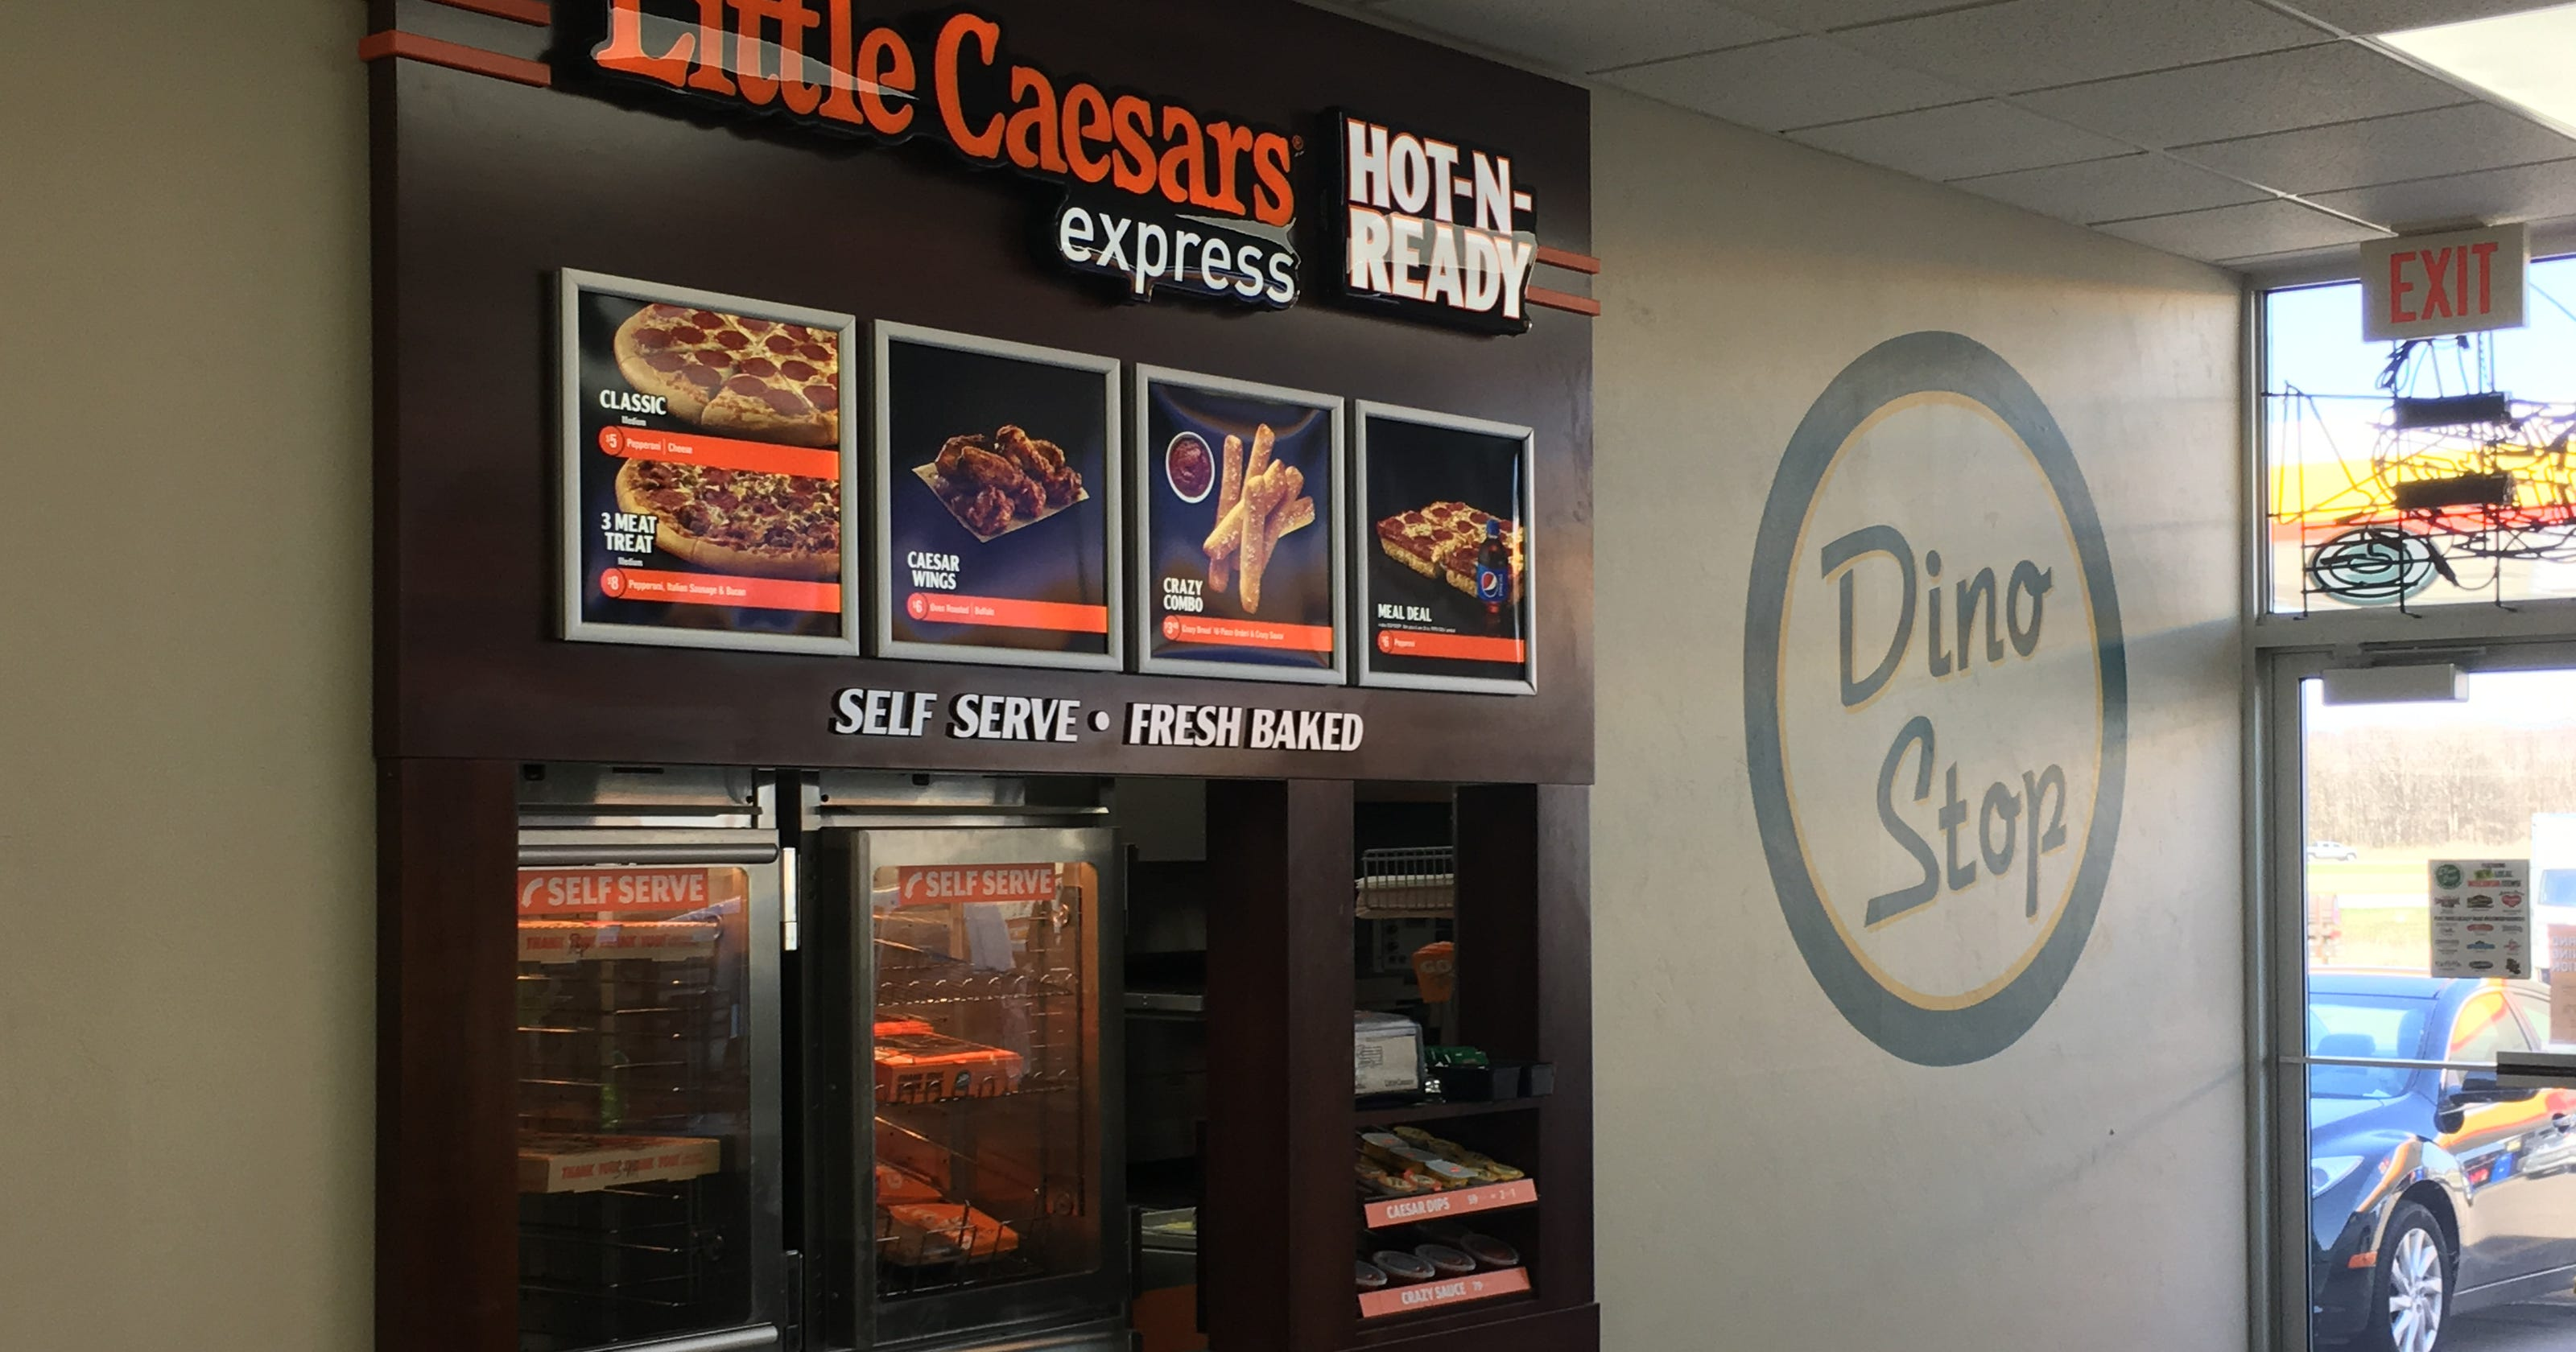 Outside Green Bay Dino Stop Introduces Little Caesars Express Concept